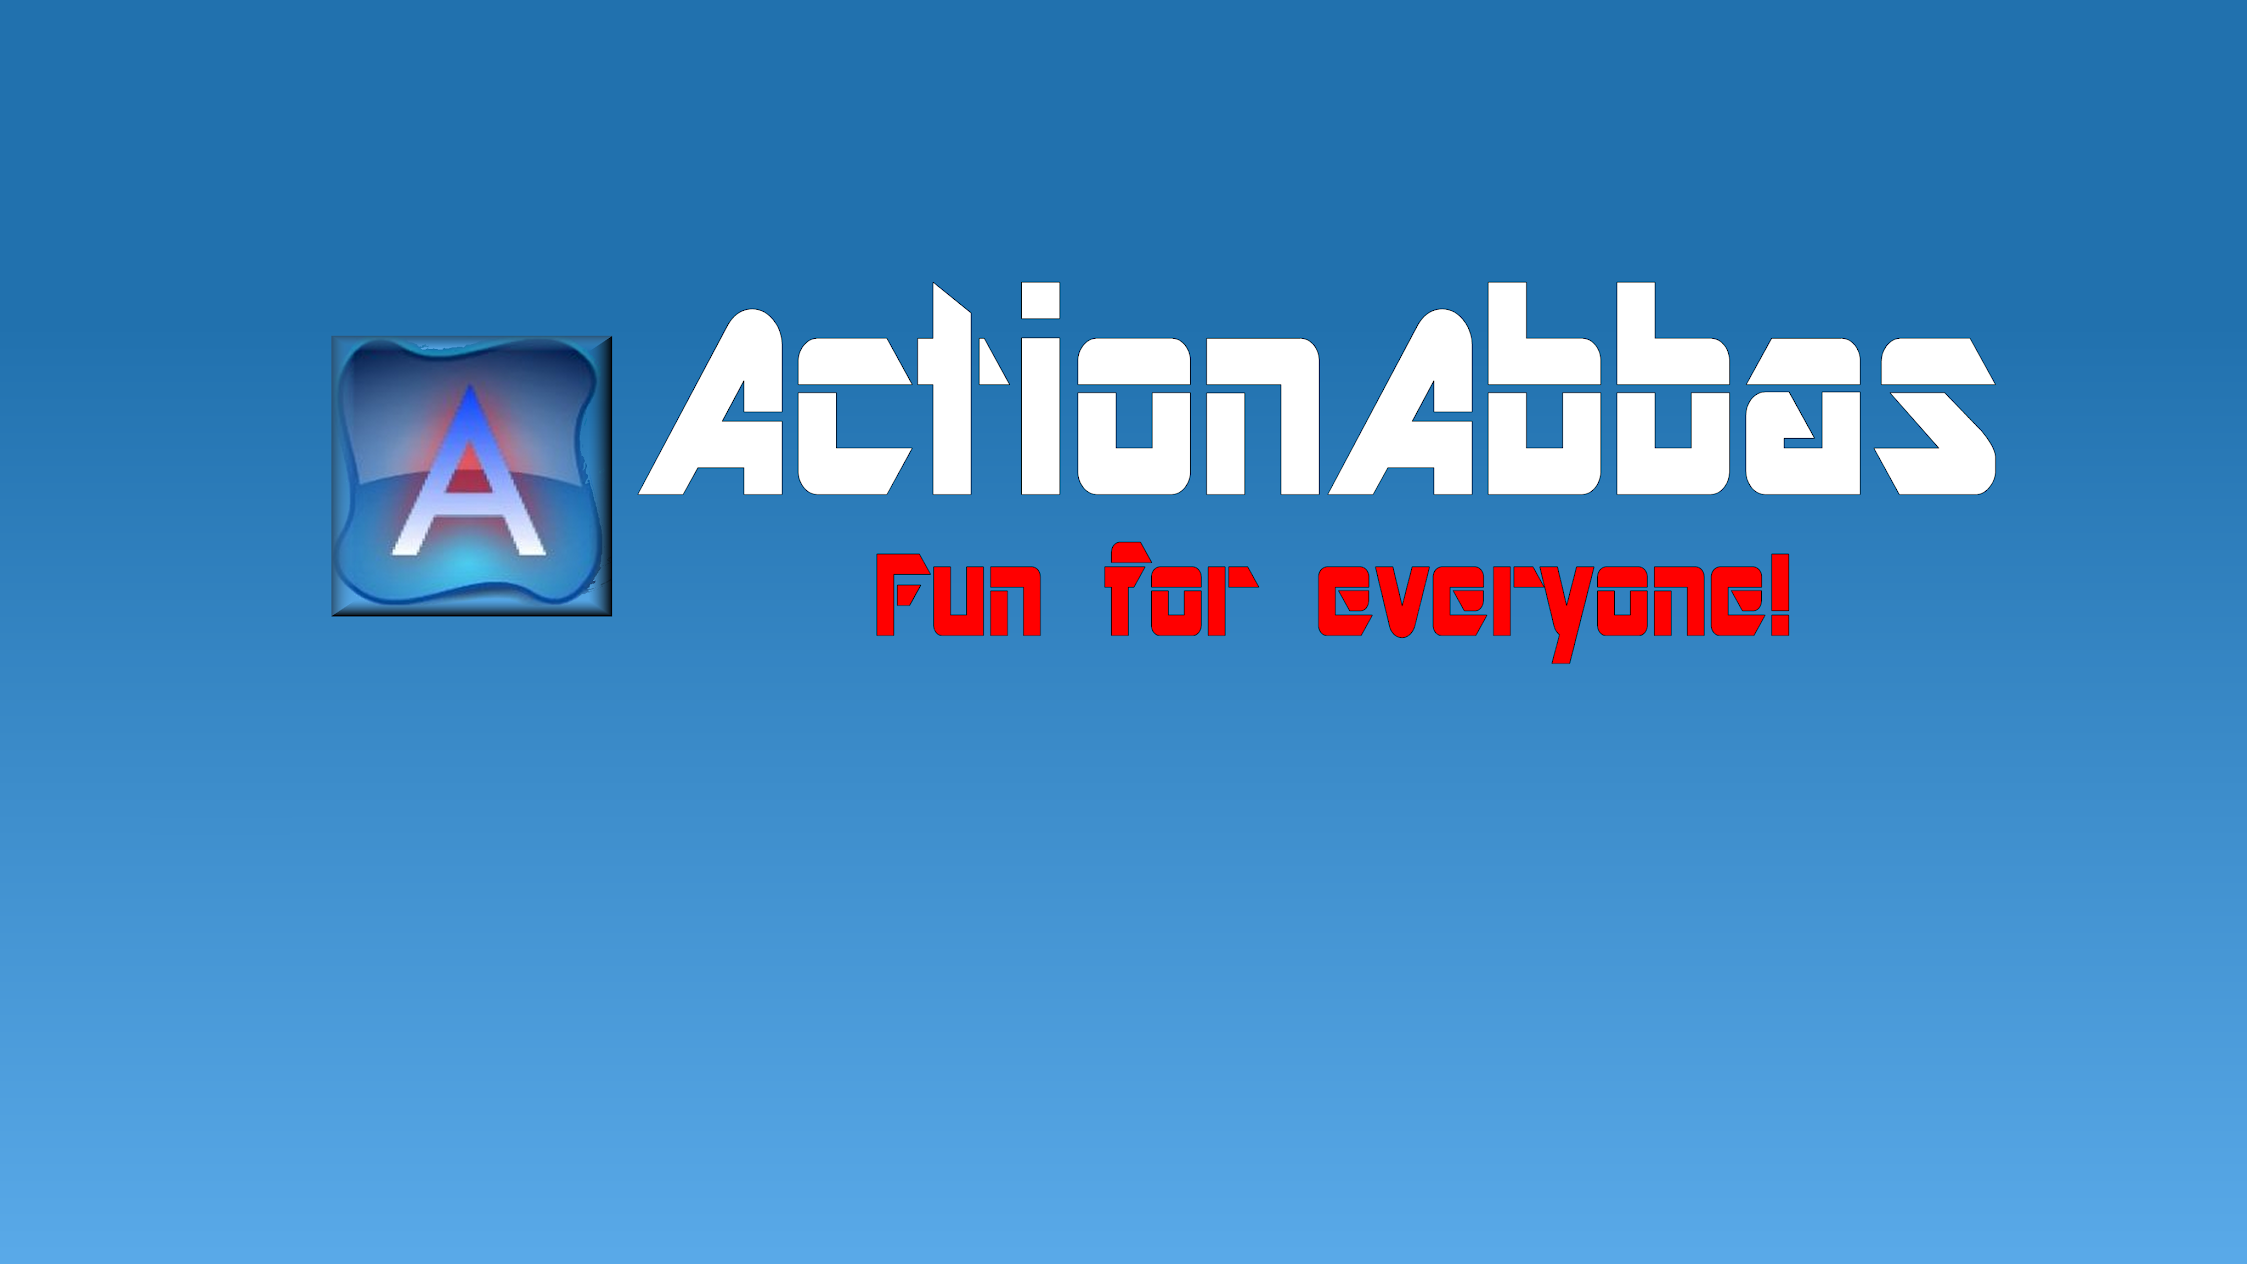 ActionAbbas